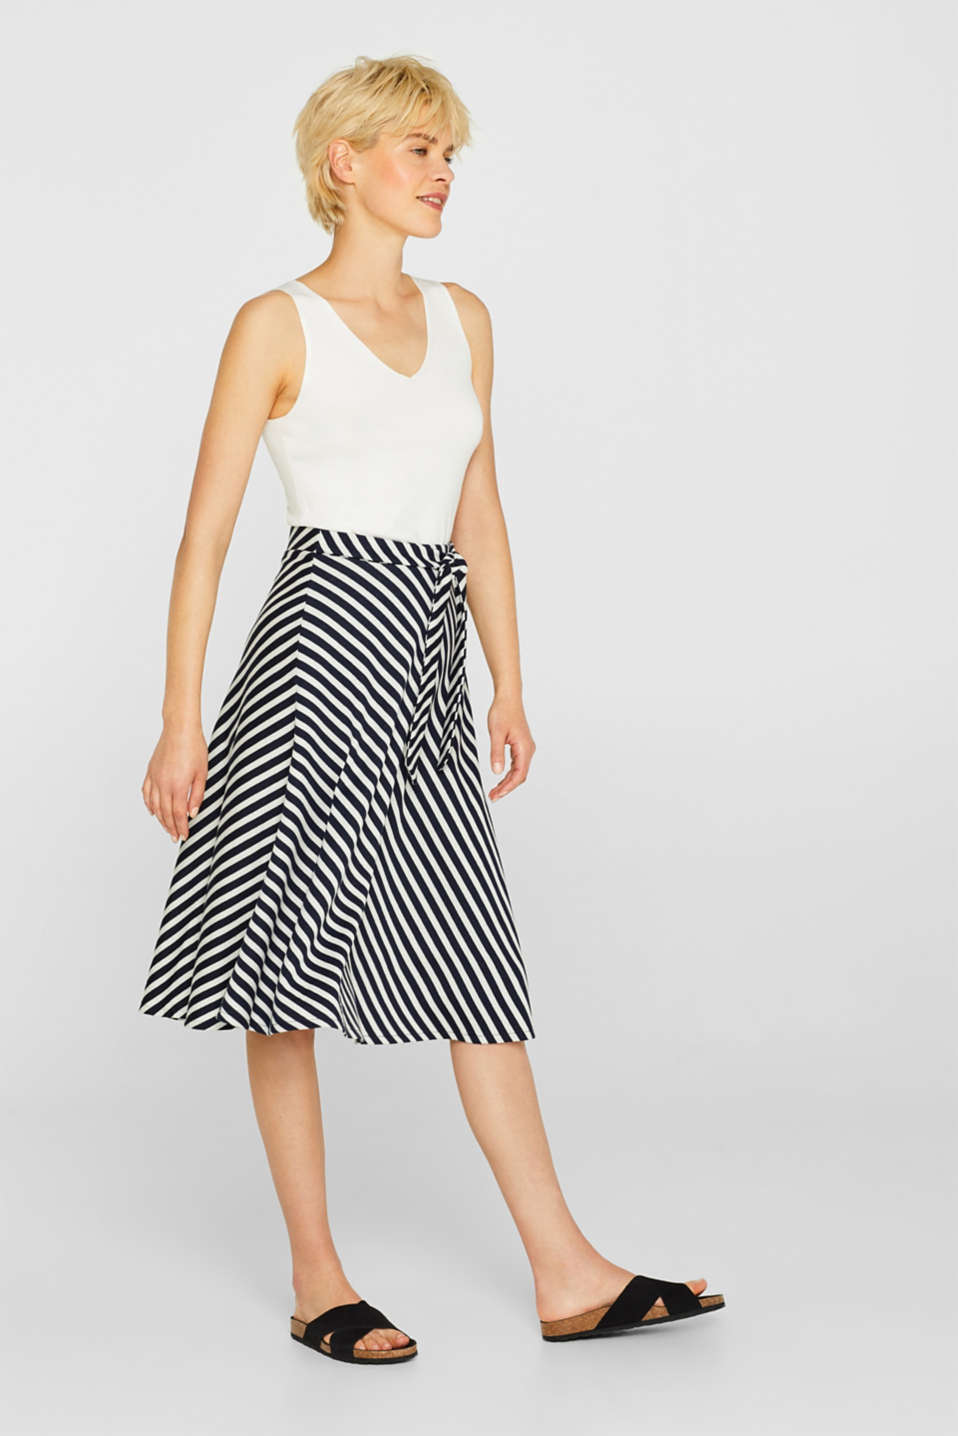 edc - Midi skirt made of dense stretch jersey